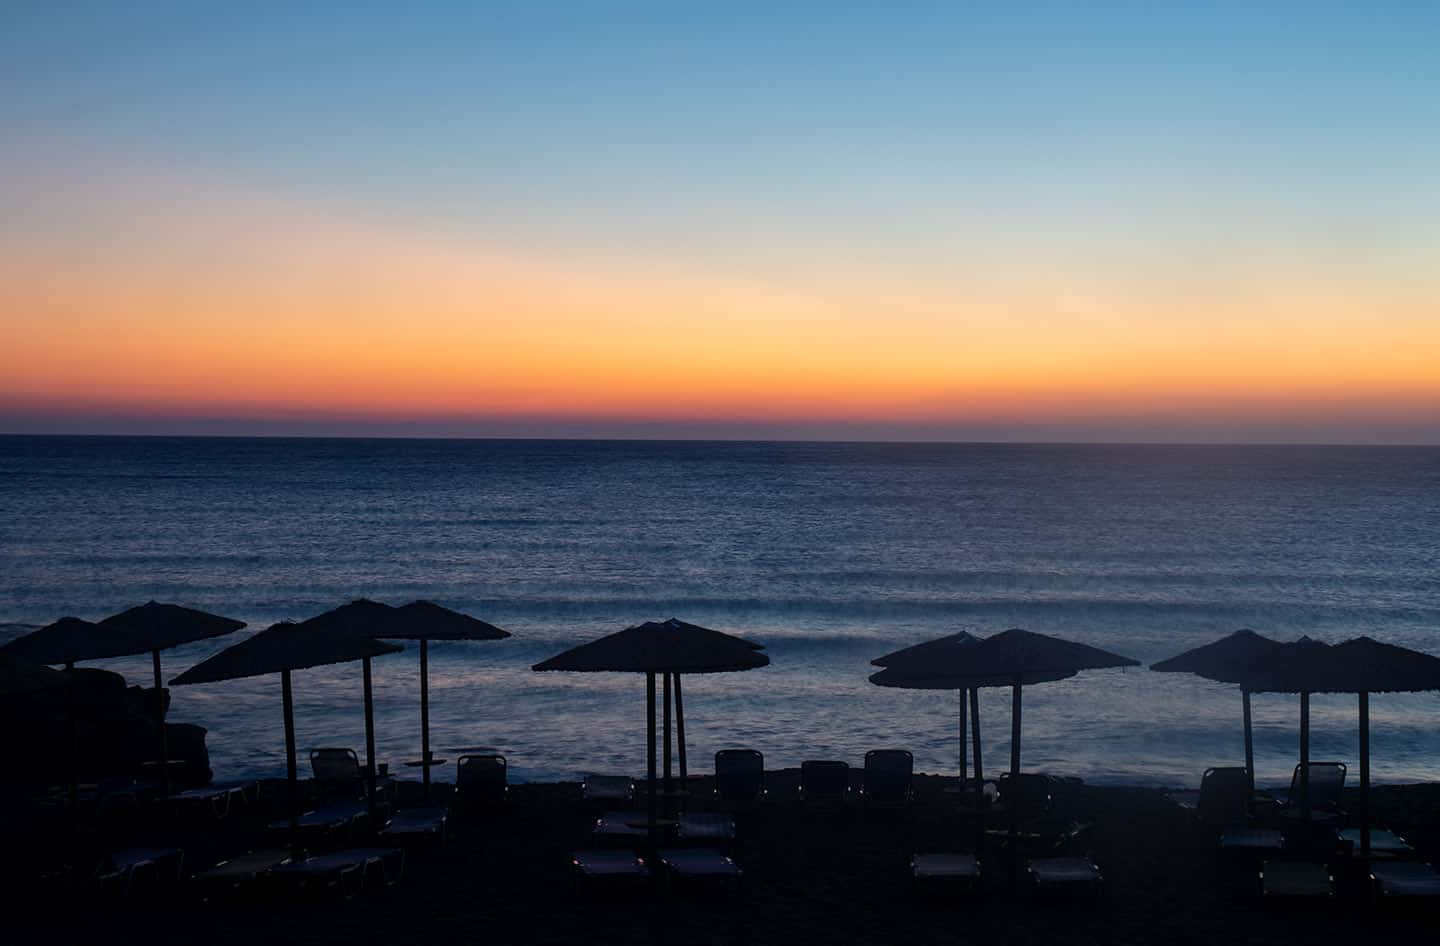 Image of a sunset at Falassarna beach Crete Greece